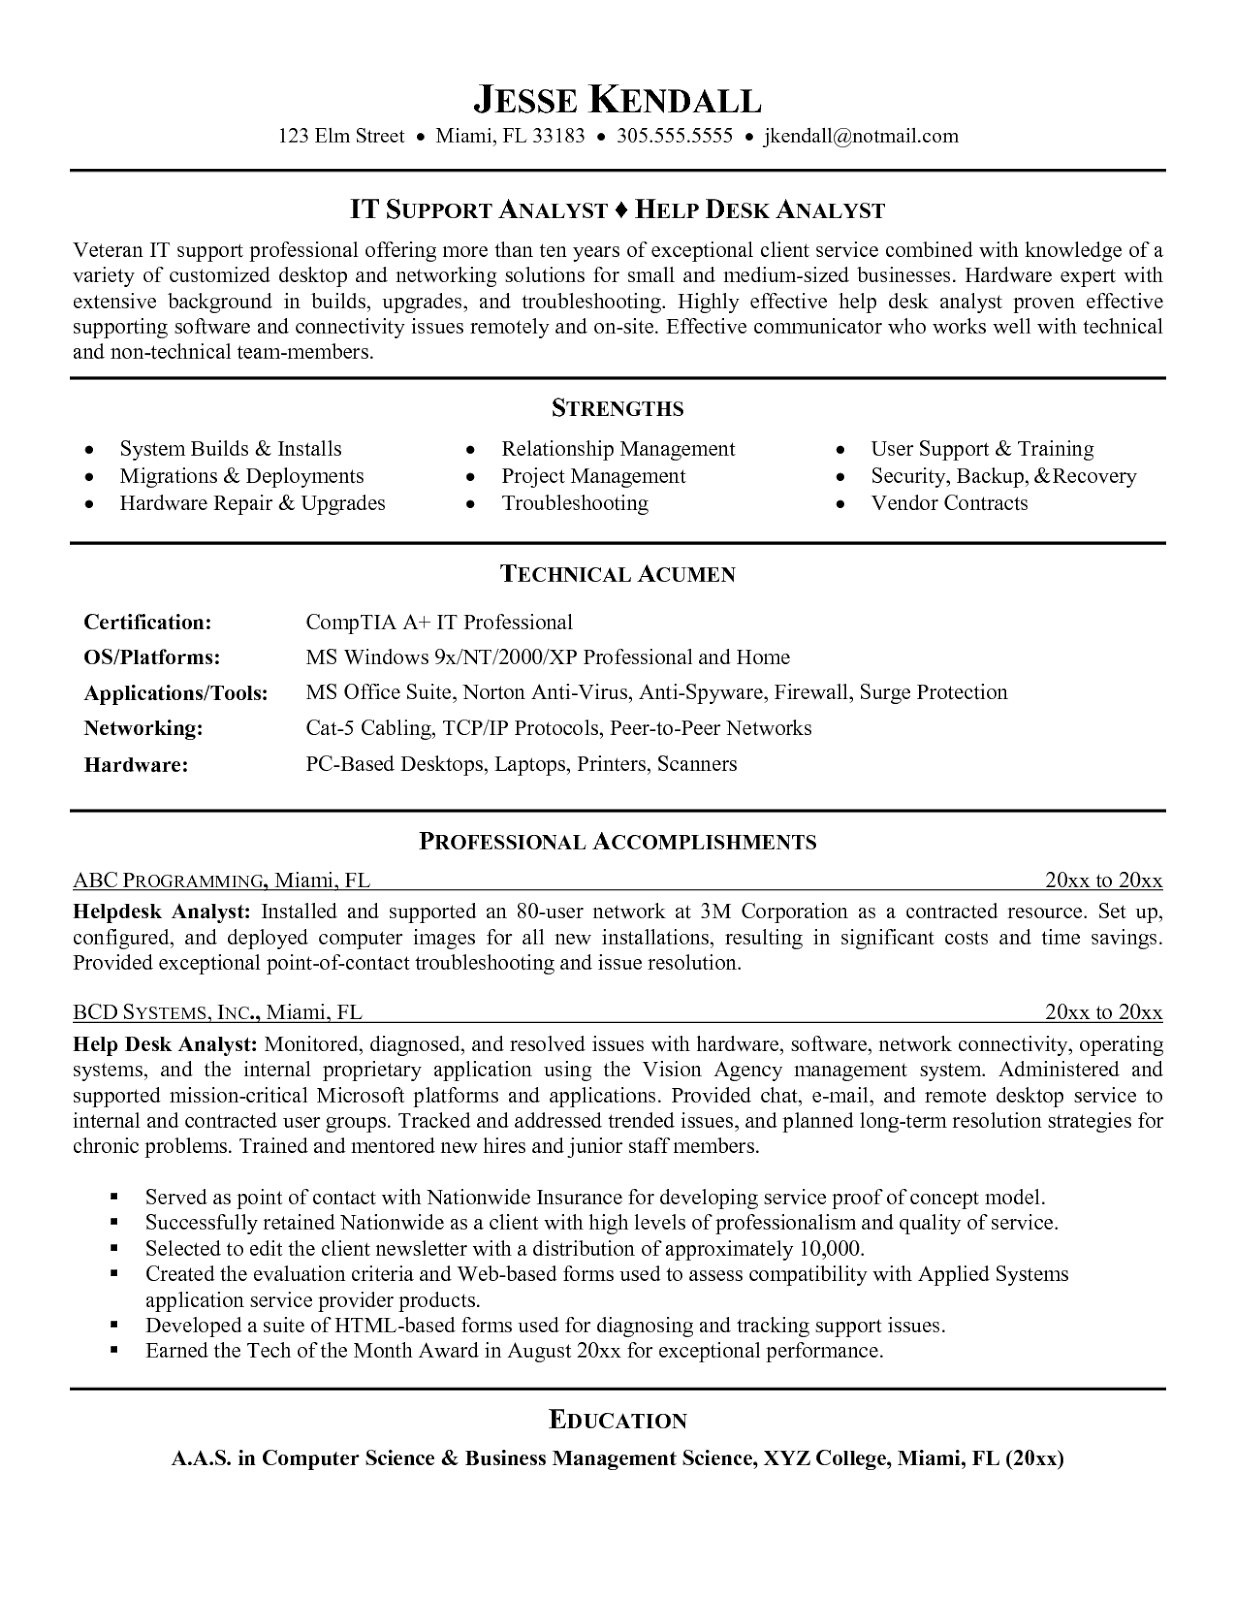 help desk support resume example help desk analyst resume samples x tier help - Help With Resumes And Cover Letters